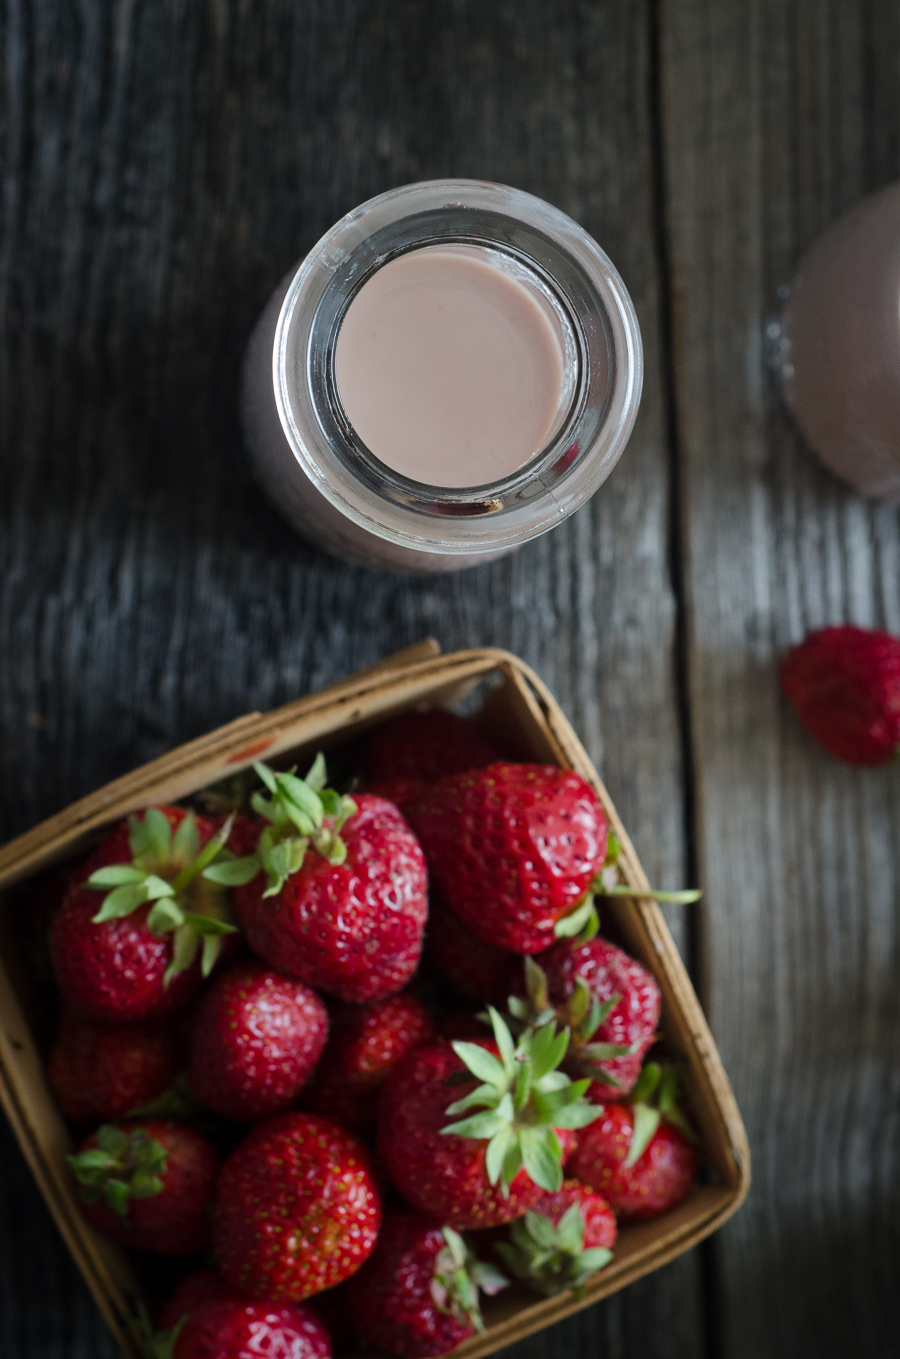 Strawberry Horchata is a naturally dairy-free, grain-free recipe using tigernuts, almonds and strawberries for a super refreshing summertime treat.